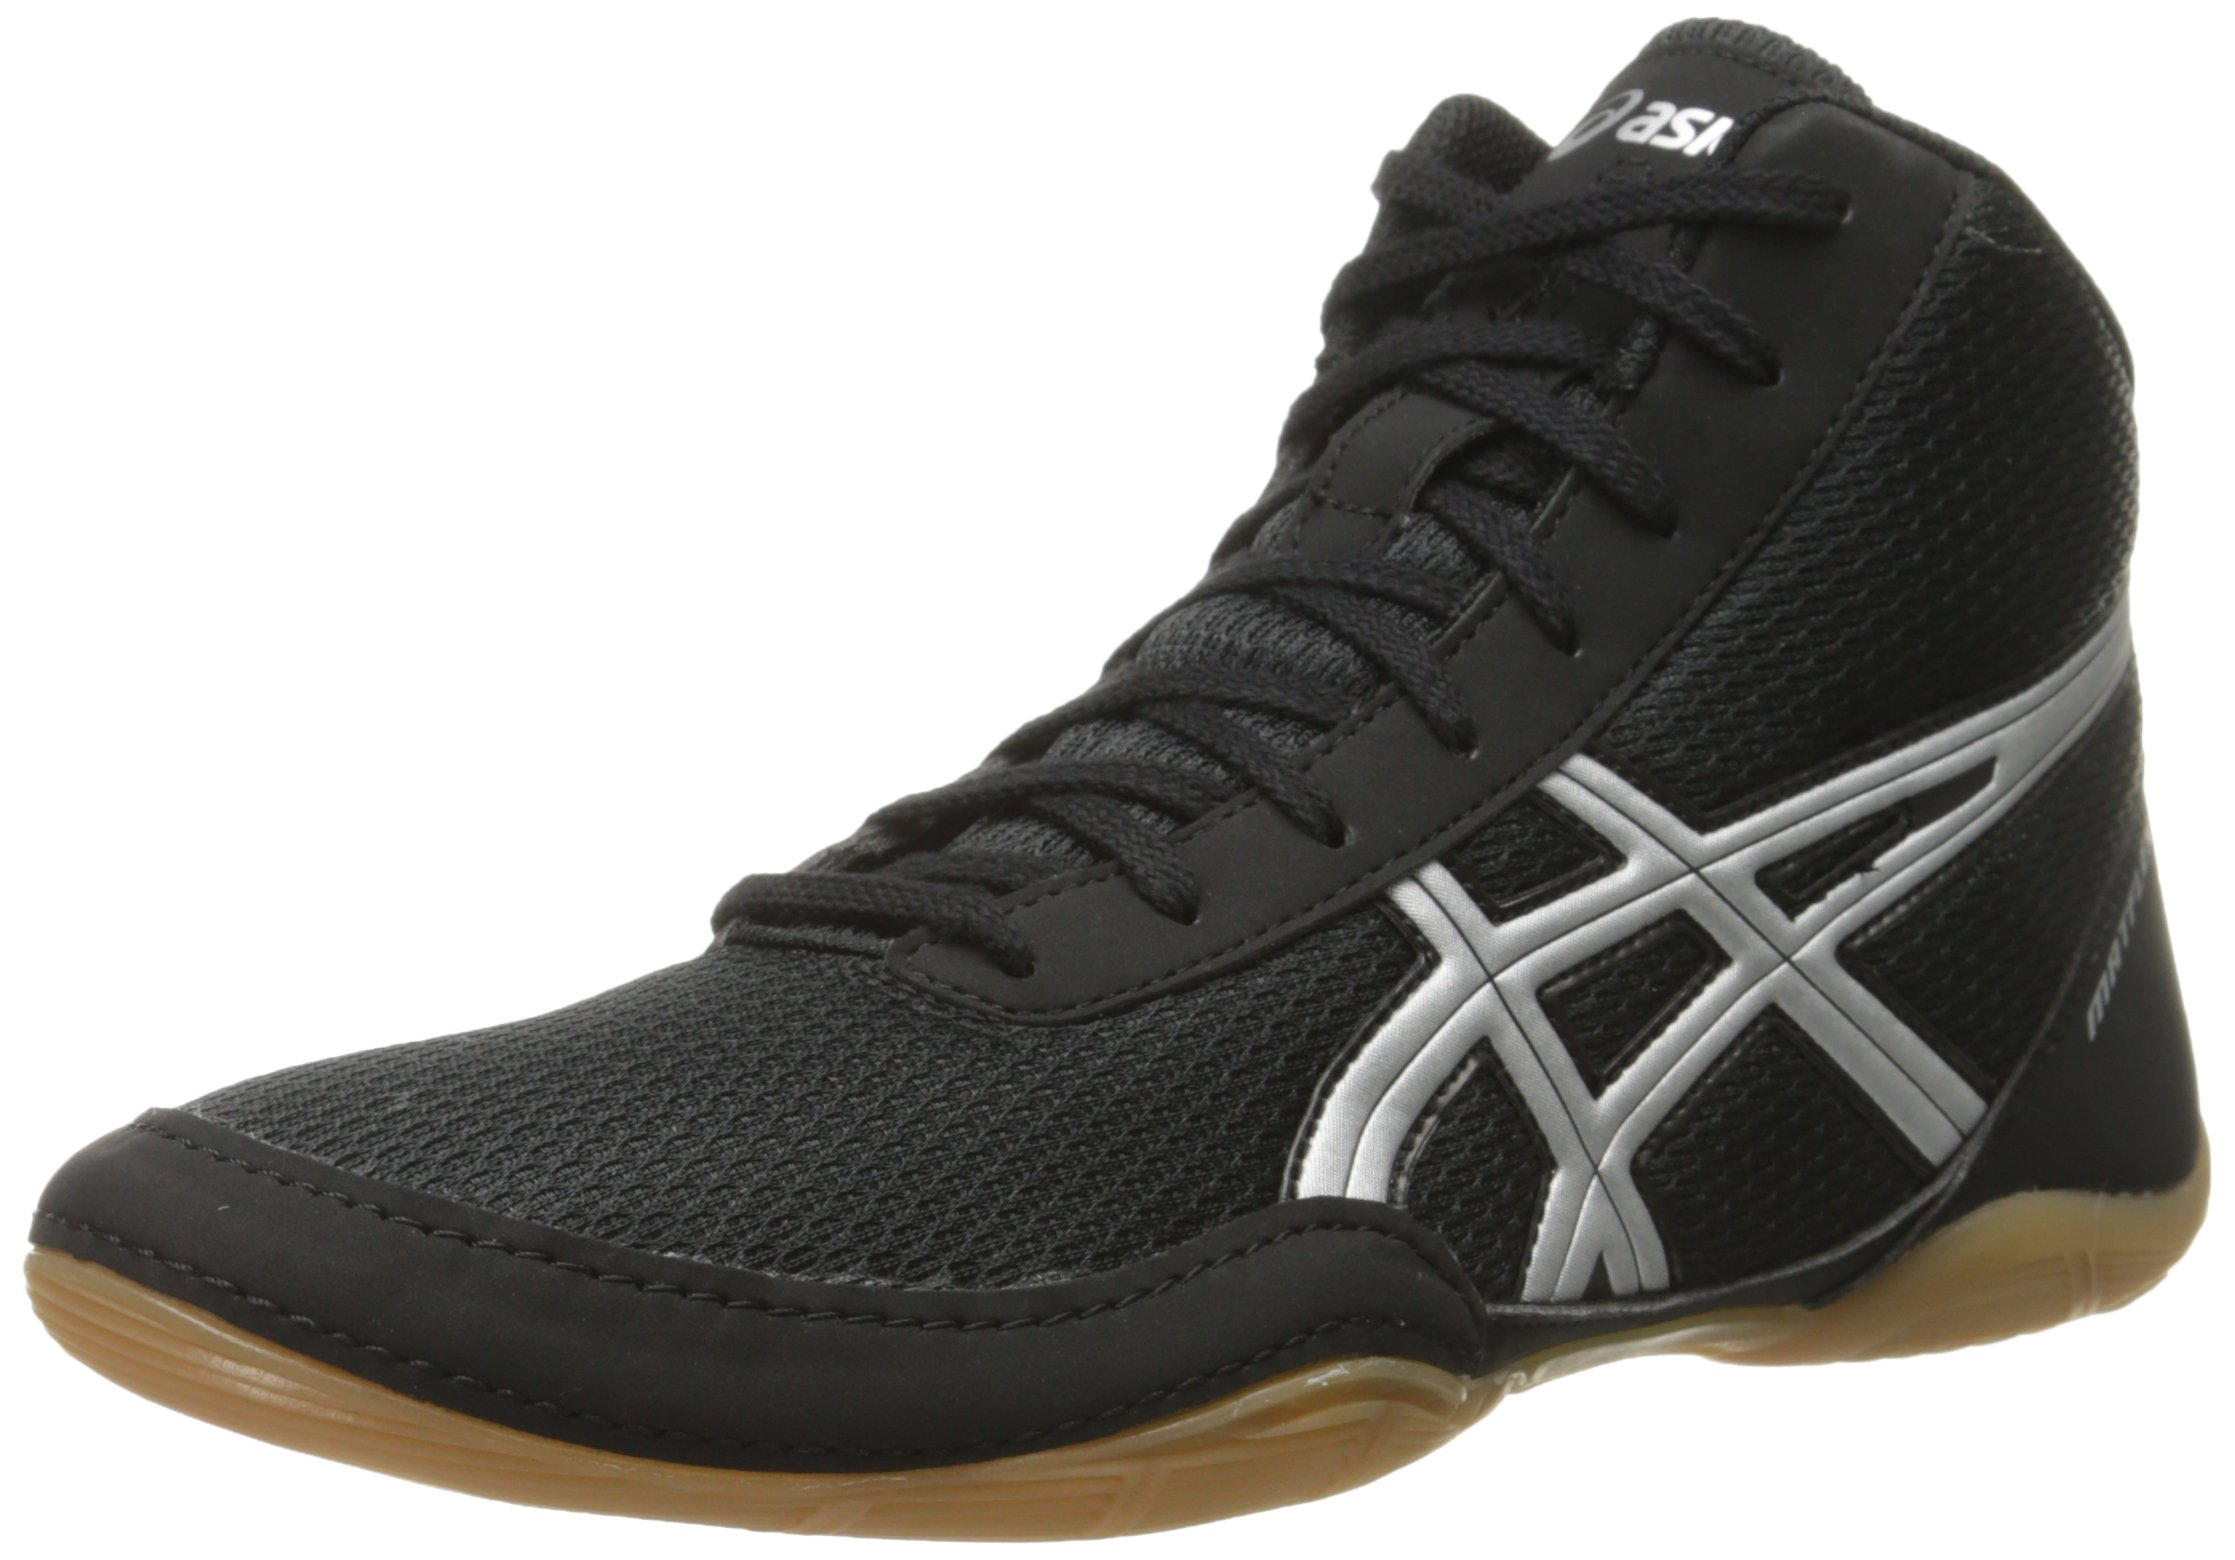 ASICS Men's Matflex 5 Wrestling Shoe, Black/Silver, 10 M US by ASICS